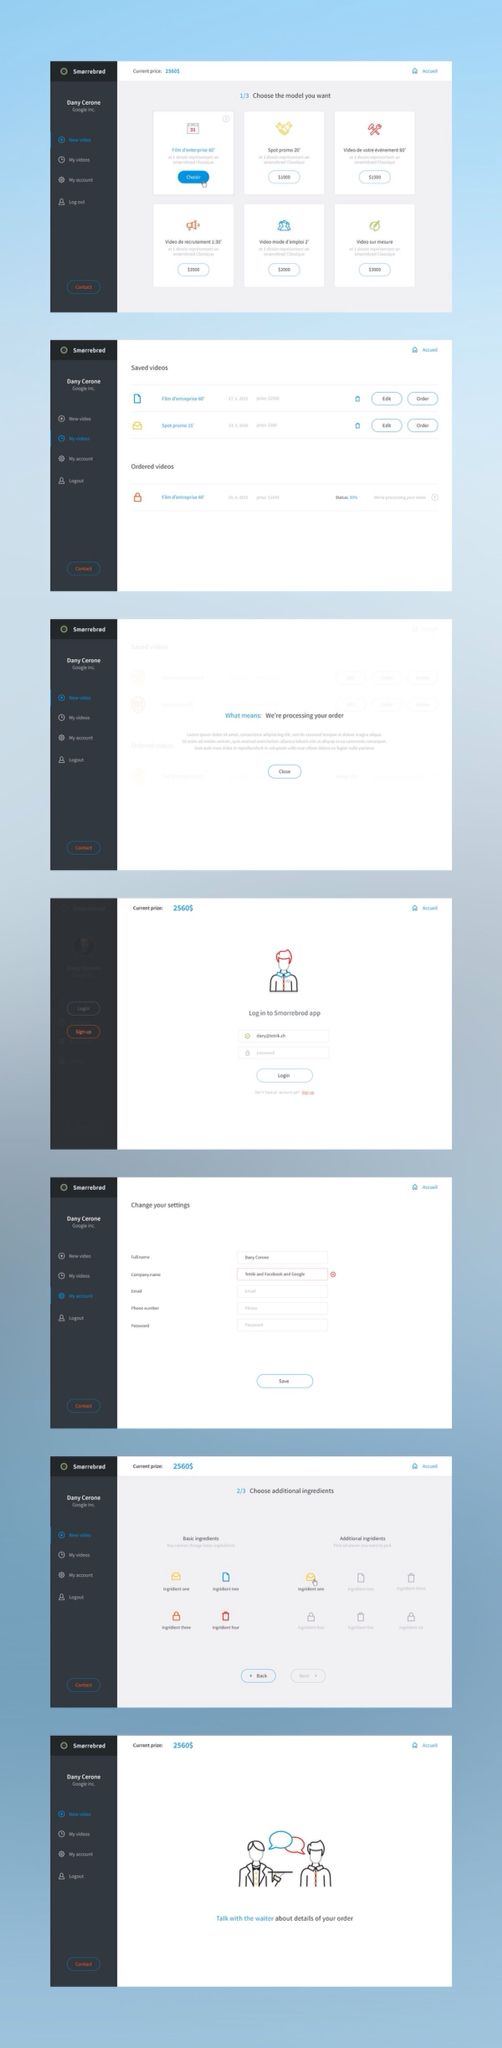 UI and UX Inspiration